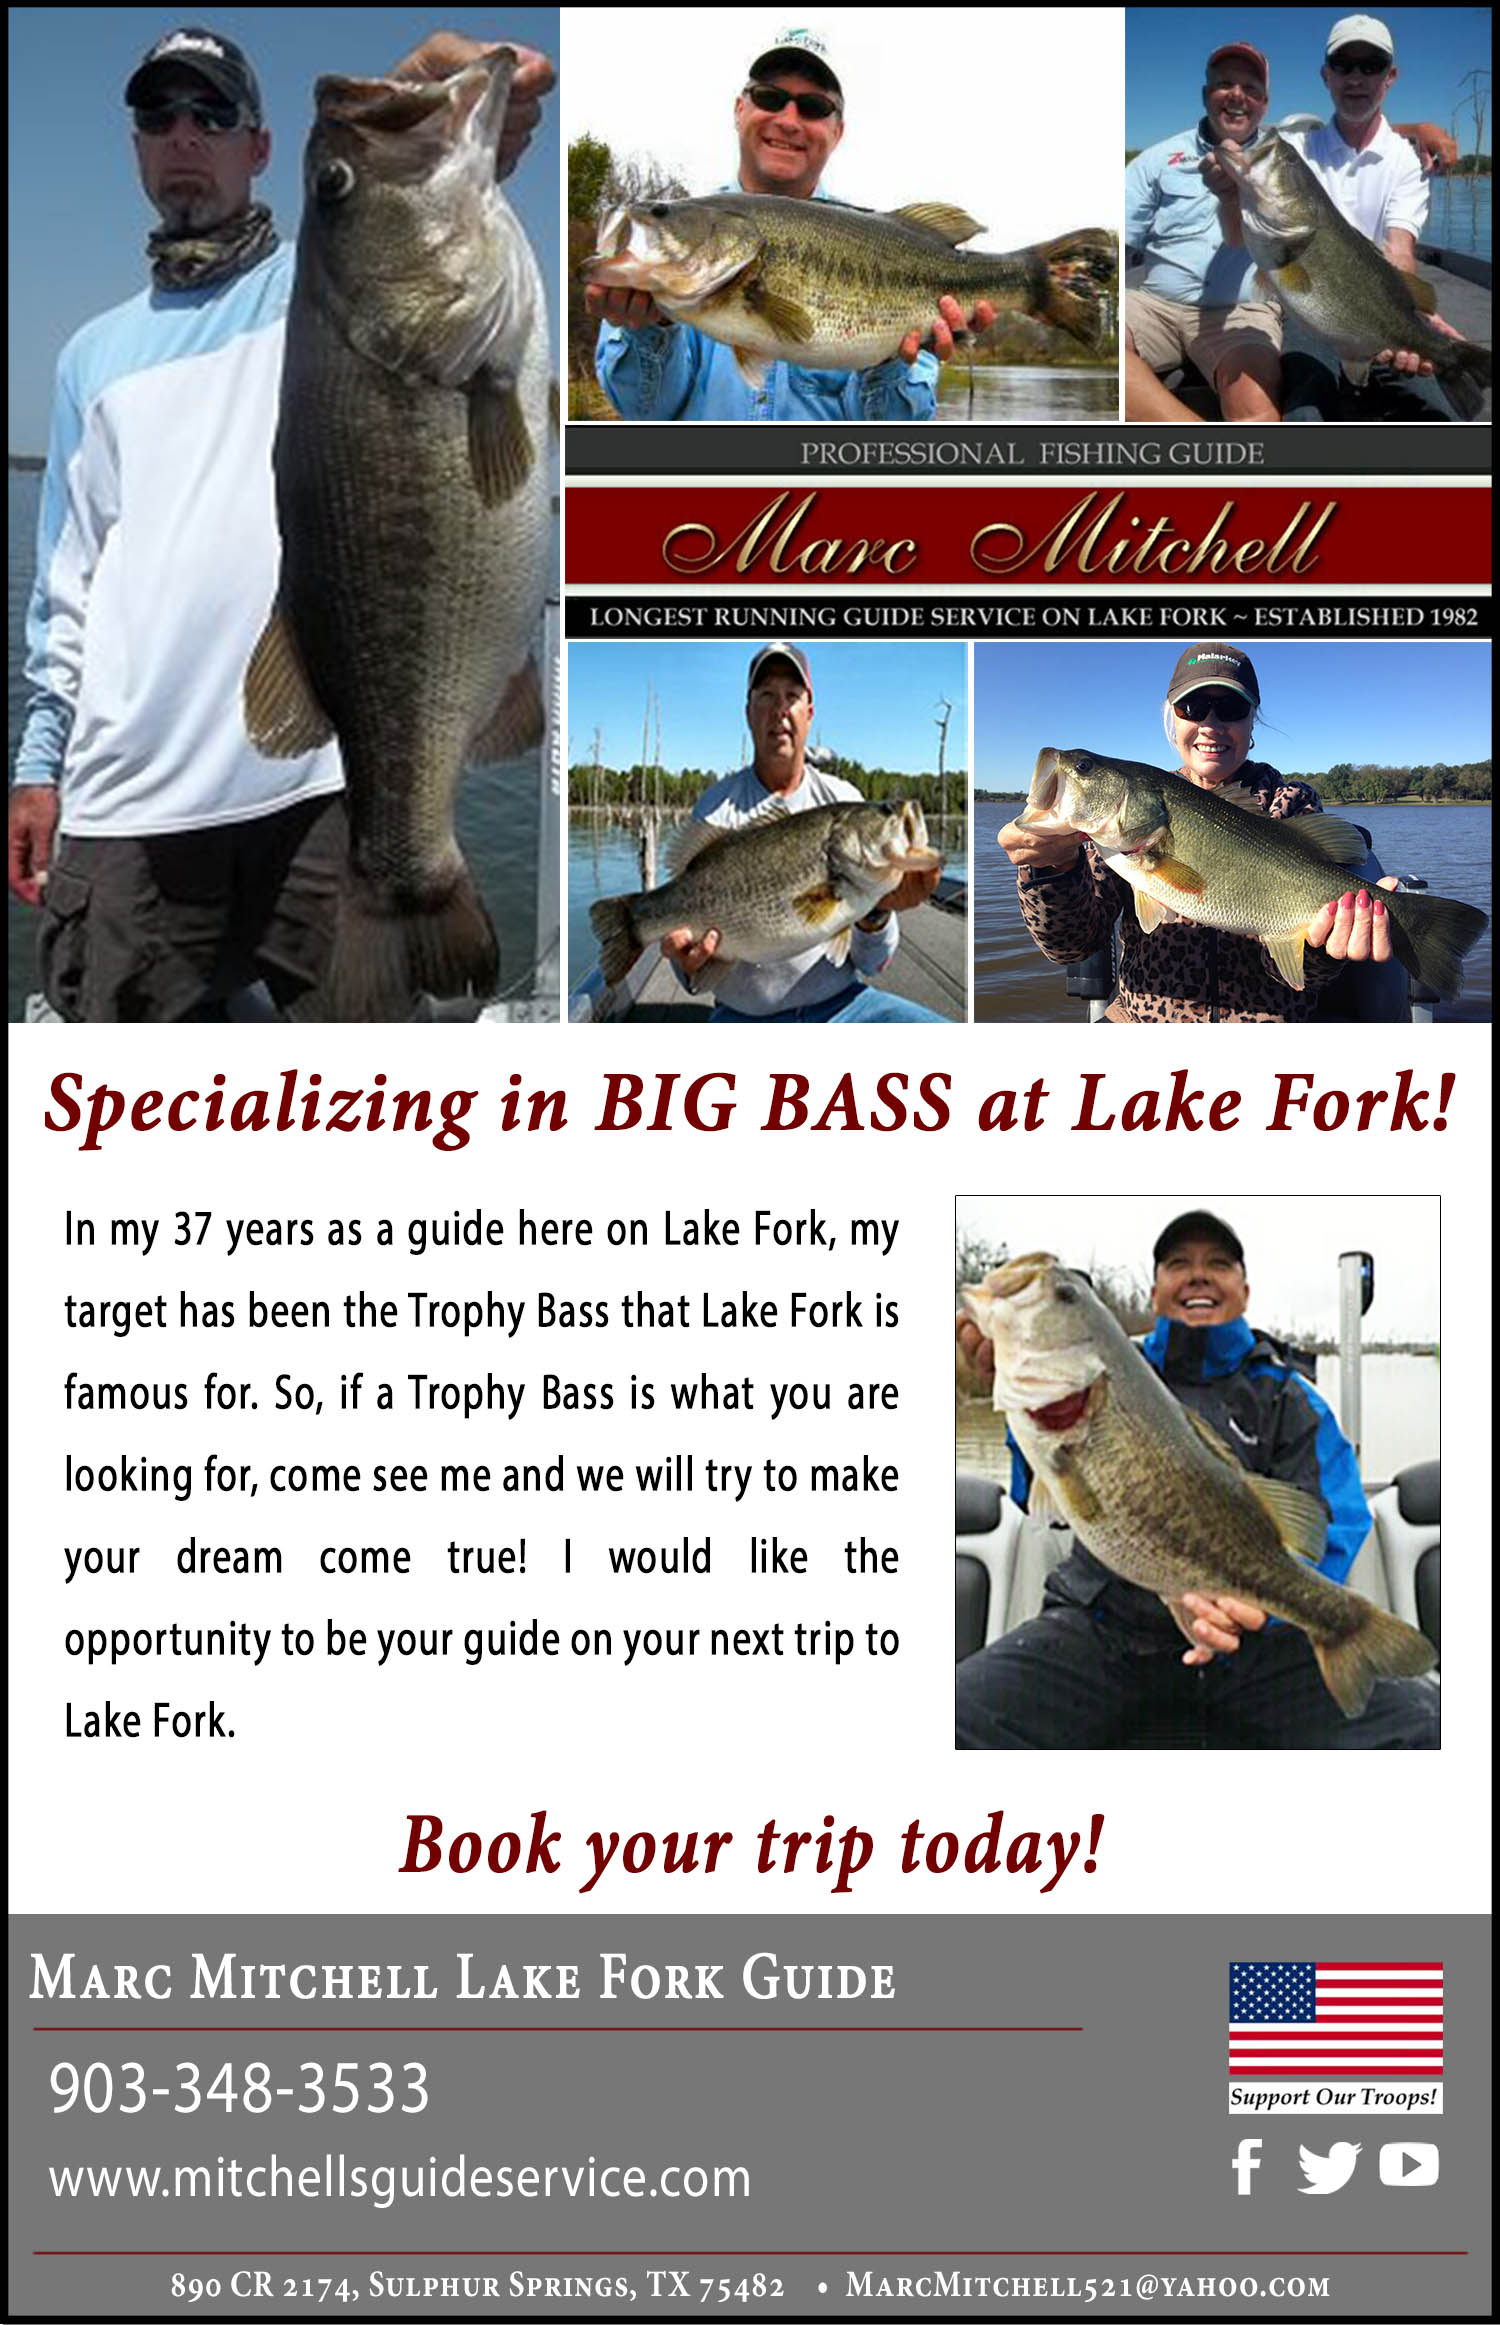 Marc Mitchell Lake Fork Guide Service